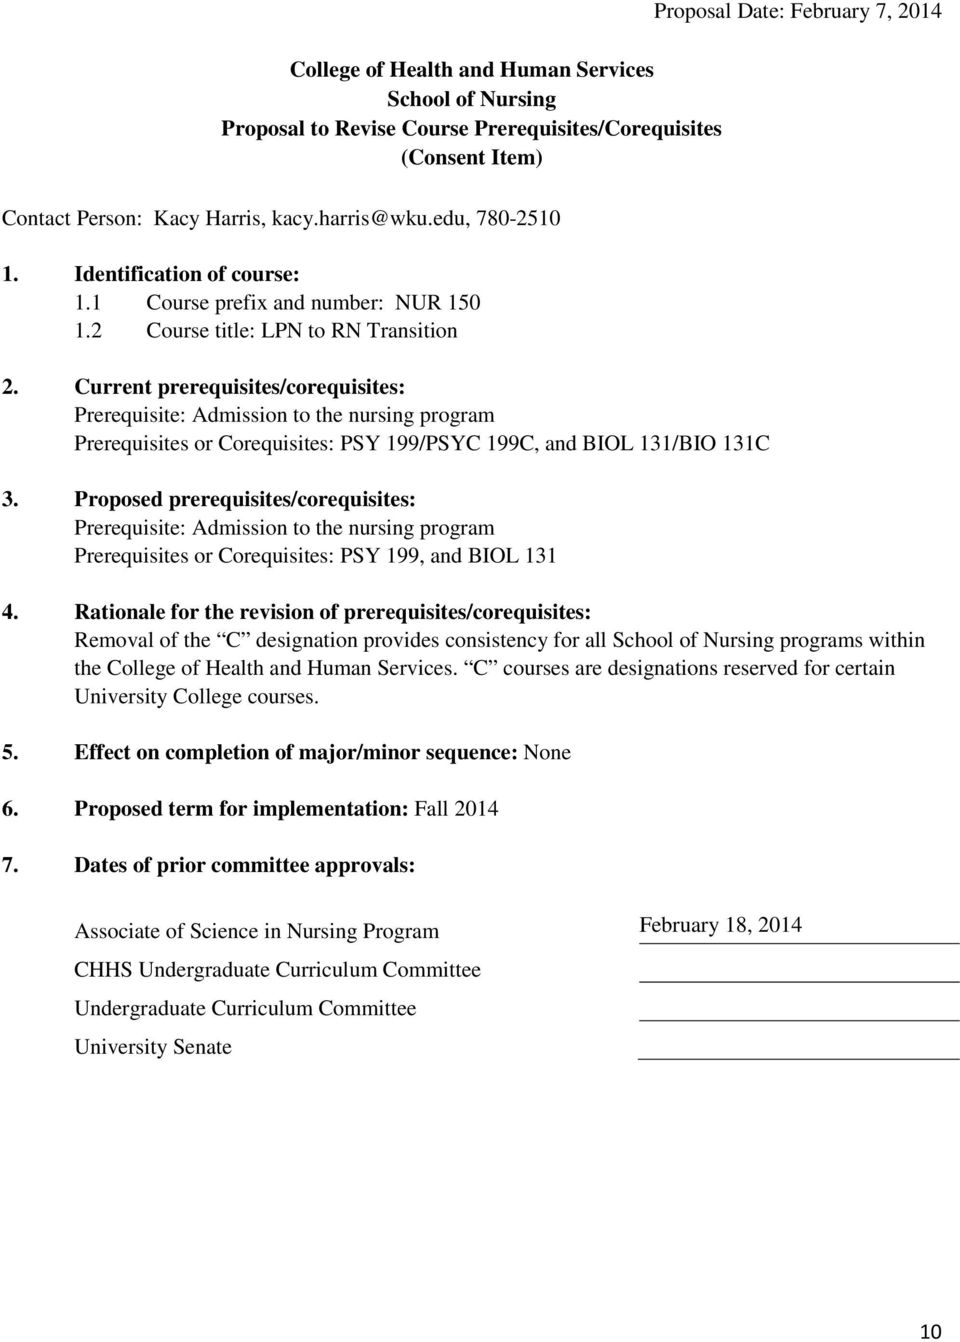 Proposed prerequisites/corequisites: Prerequisite: Admission to the nursing program Prerequisites or Corequisites: PSY 199, and BIOL 131 Proposal Date: February 7, 2014 4.